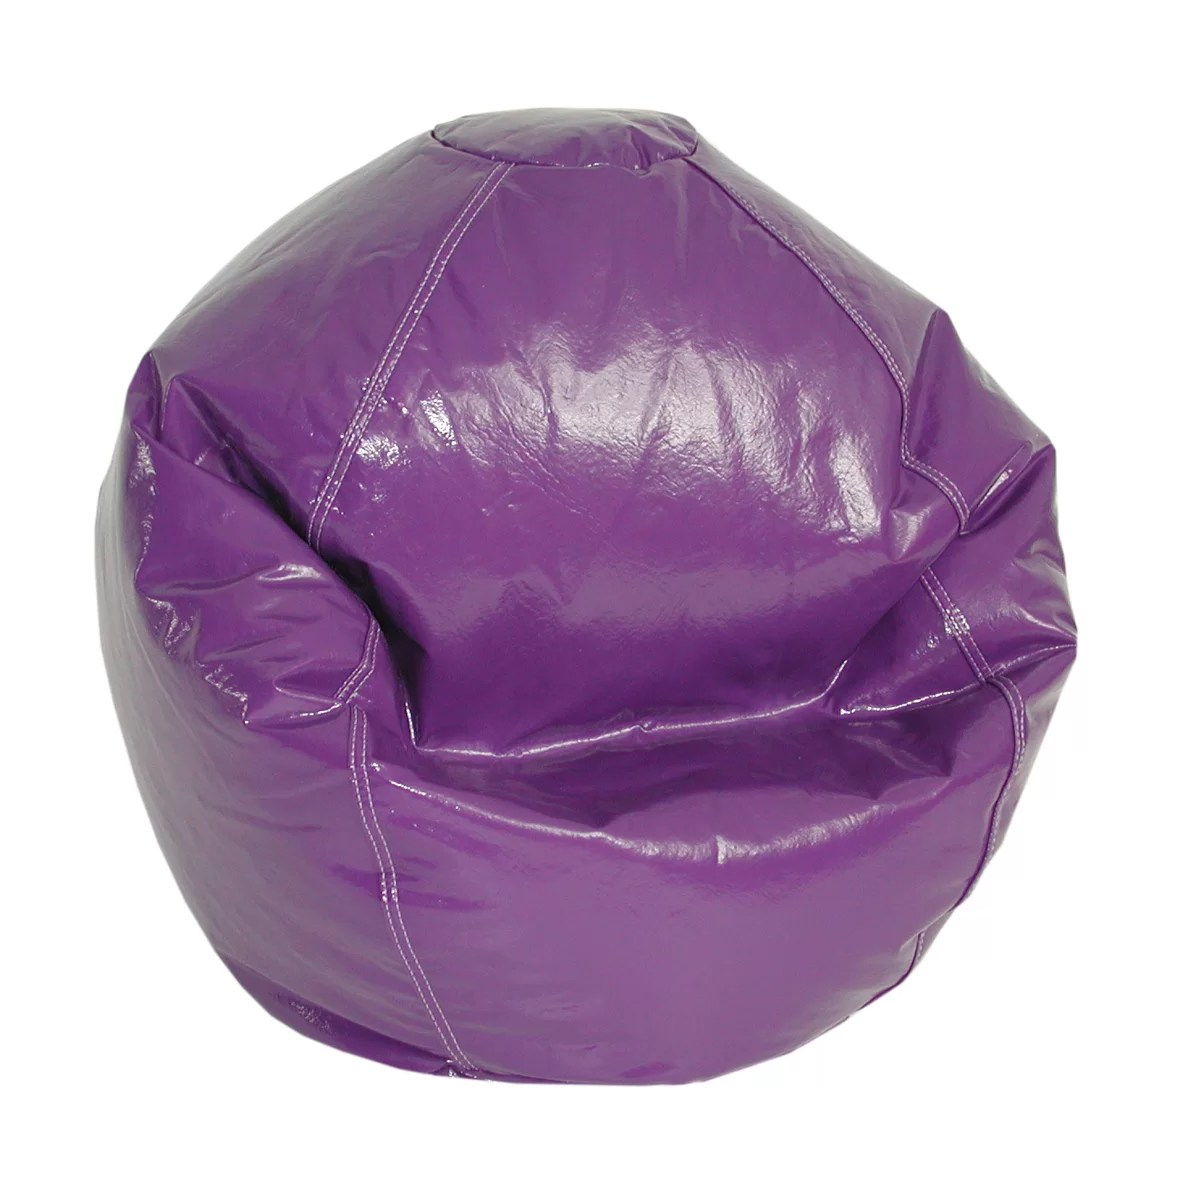 bean bag chair cost patio foot caps elite products wetlook and reviews wayfair